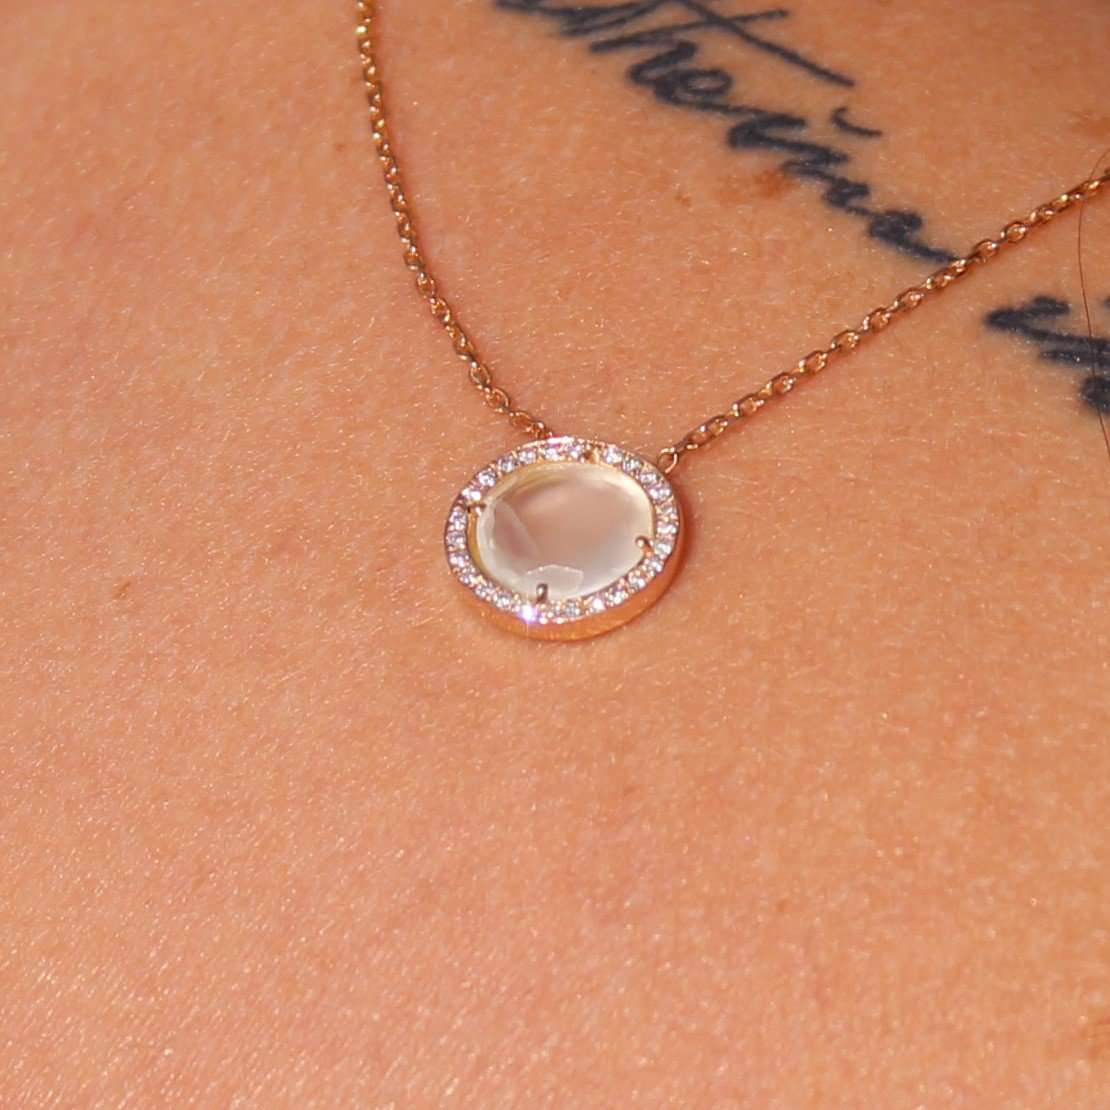 The Moonstone Necklace,Aurum Jewellery, Curated Designer at Freesigners.com